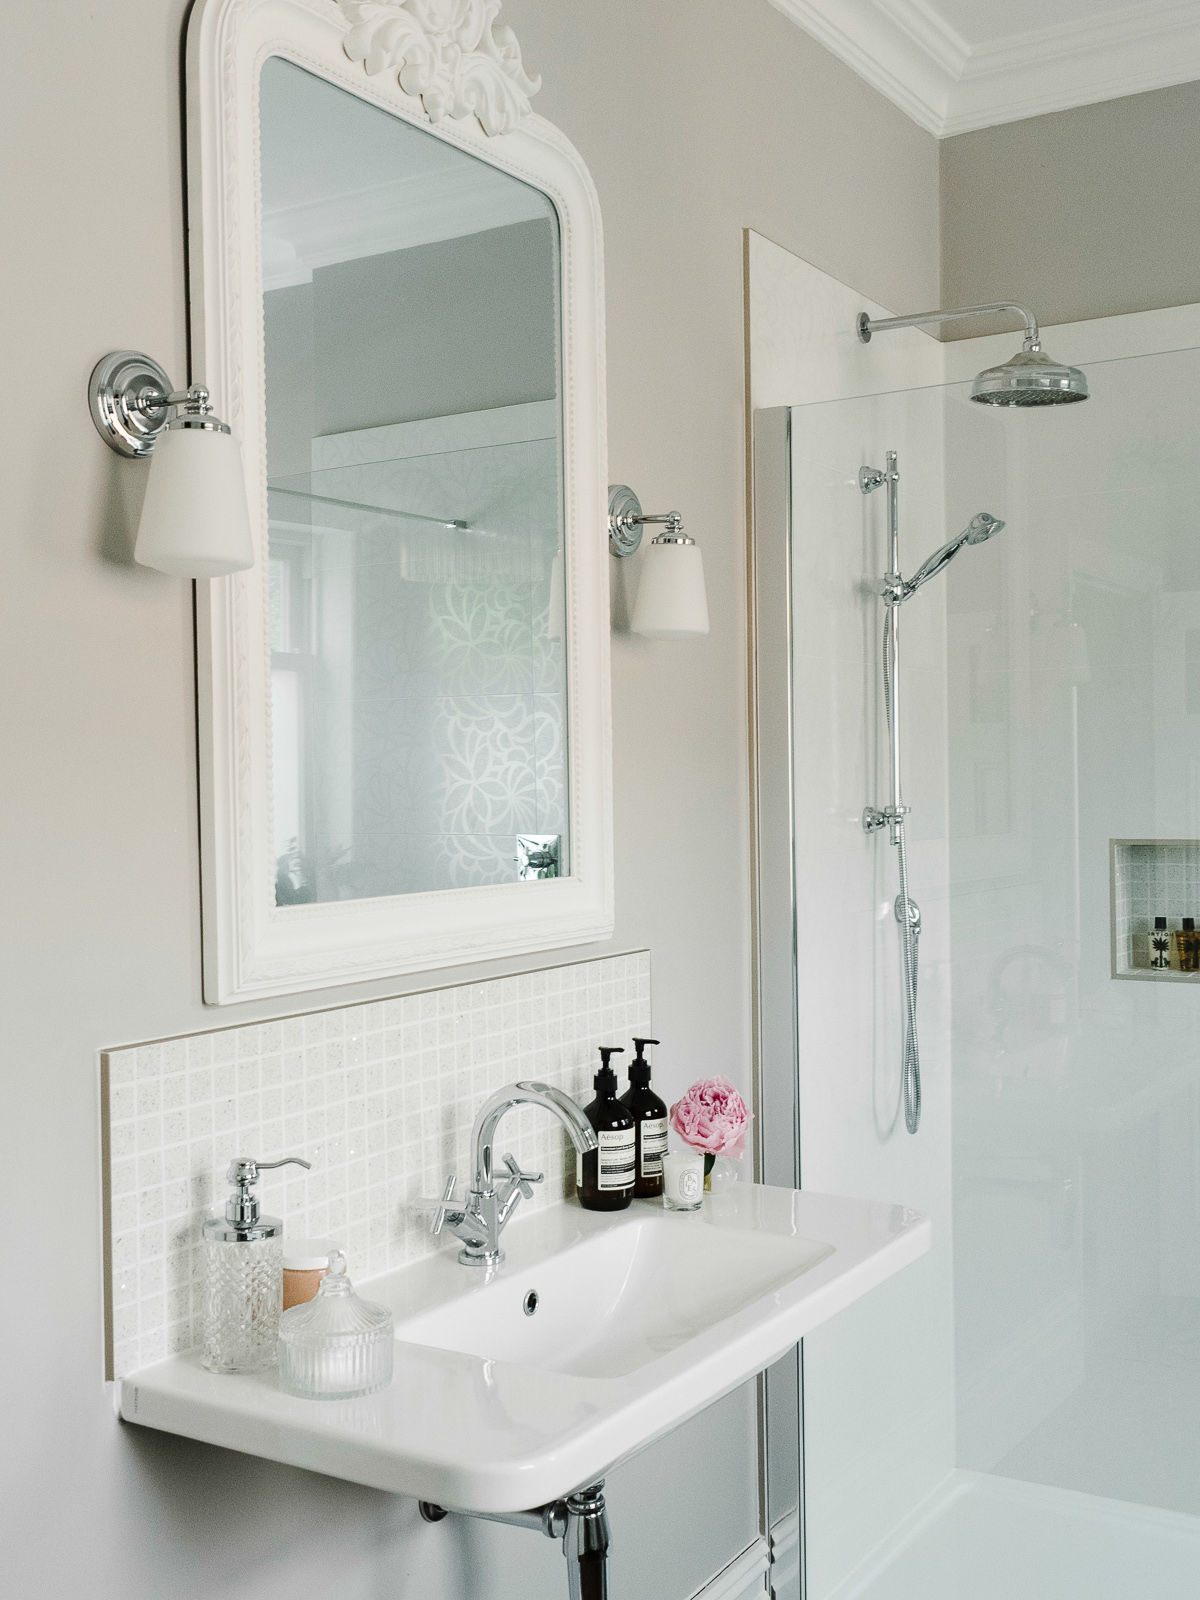 How to achieve the hotel bathroom look in your own home - walk in shower